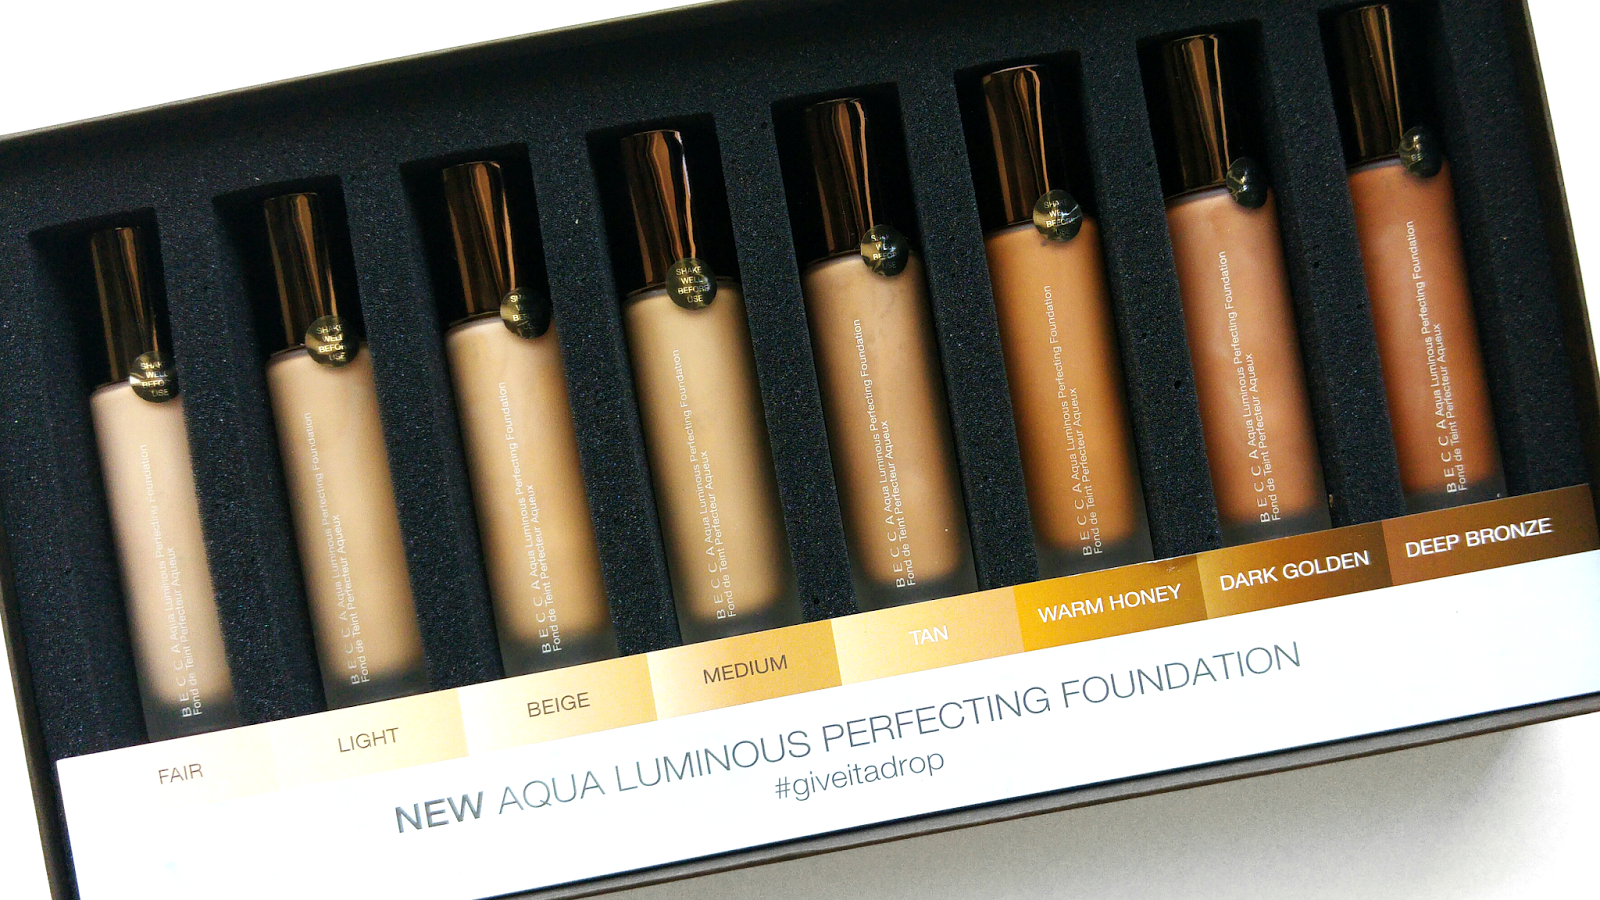 Why I Love Becca Cosmetics Aqua Luminous Perfecting Foundation, Becca Cosmetics Aqua Luminous Perfecting Foundation Review, Becca Cosmetics Aqua Luminous Perfecting Foundation Swatches